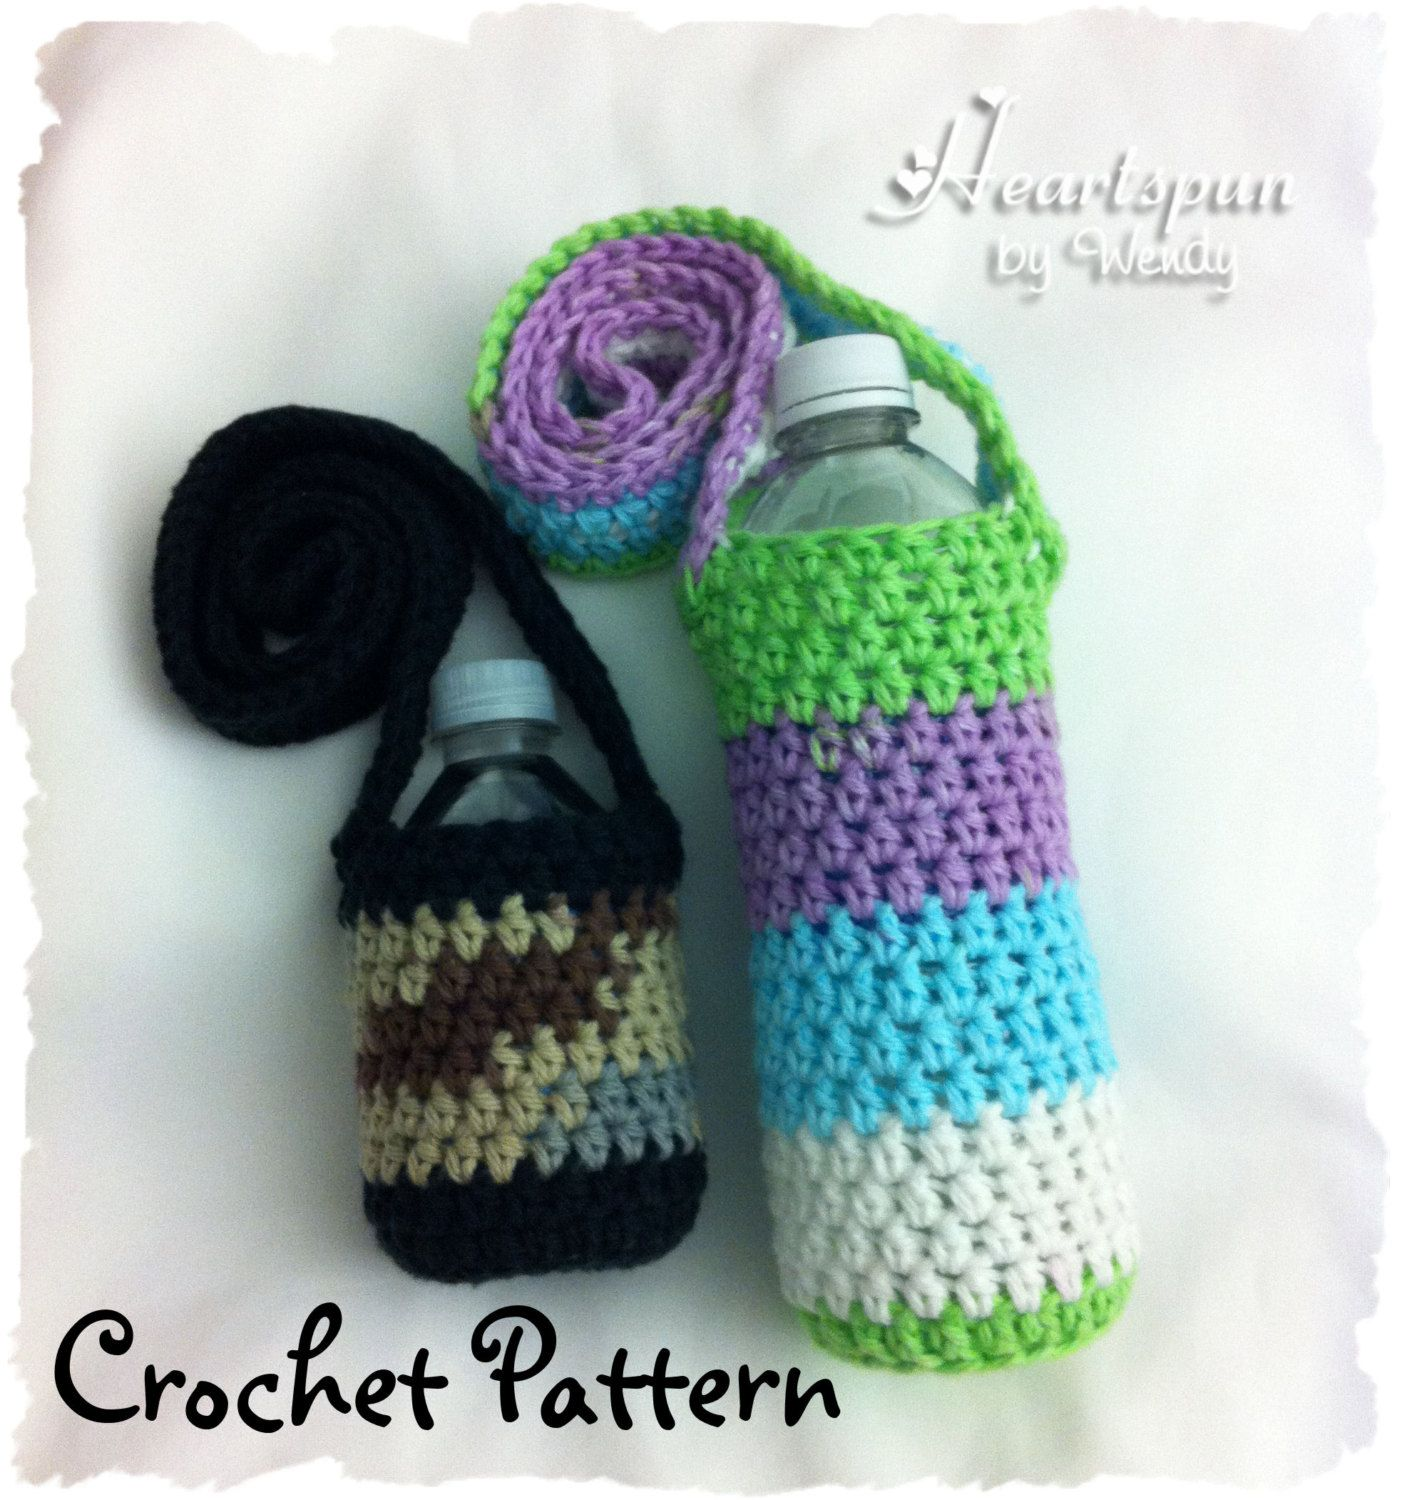 Crochet pattern to make a changing colors water bottle holder crochet pattern to make a changing colors water bottle holder drink carrier in 2 sizes bankloansurffo Choice Image